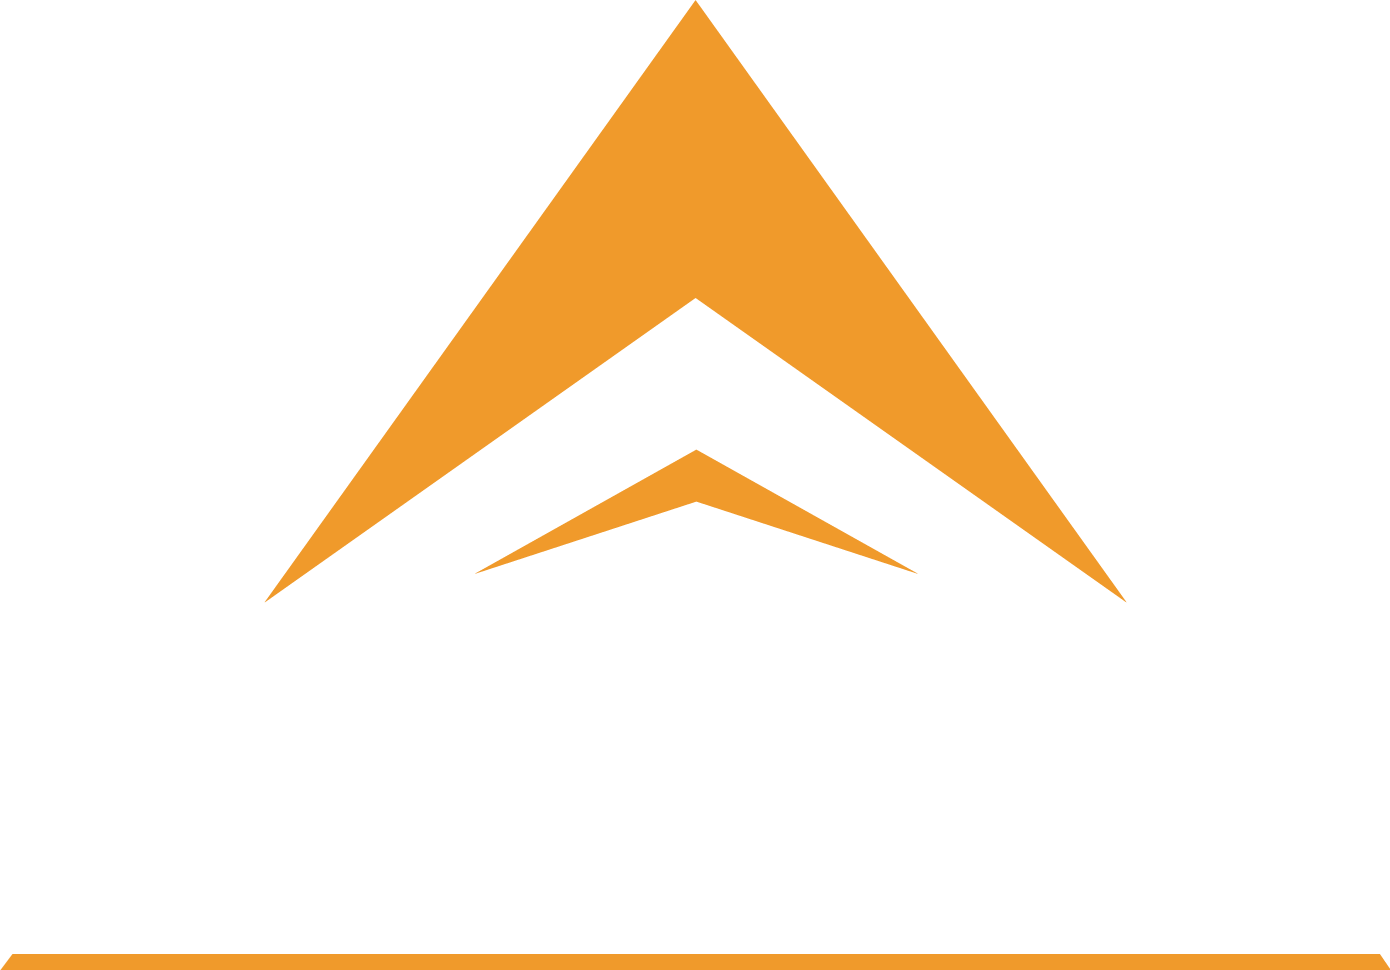 Advanced-security